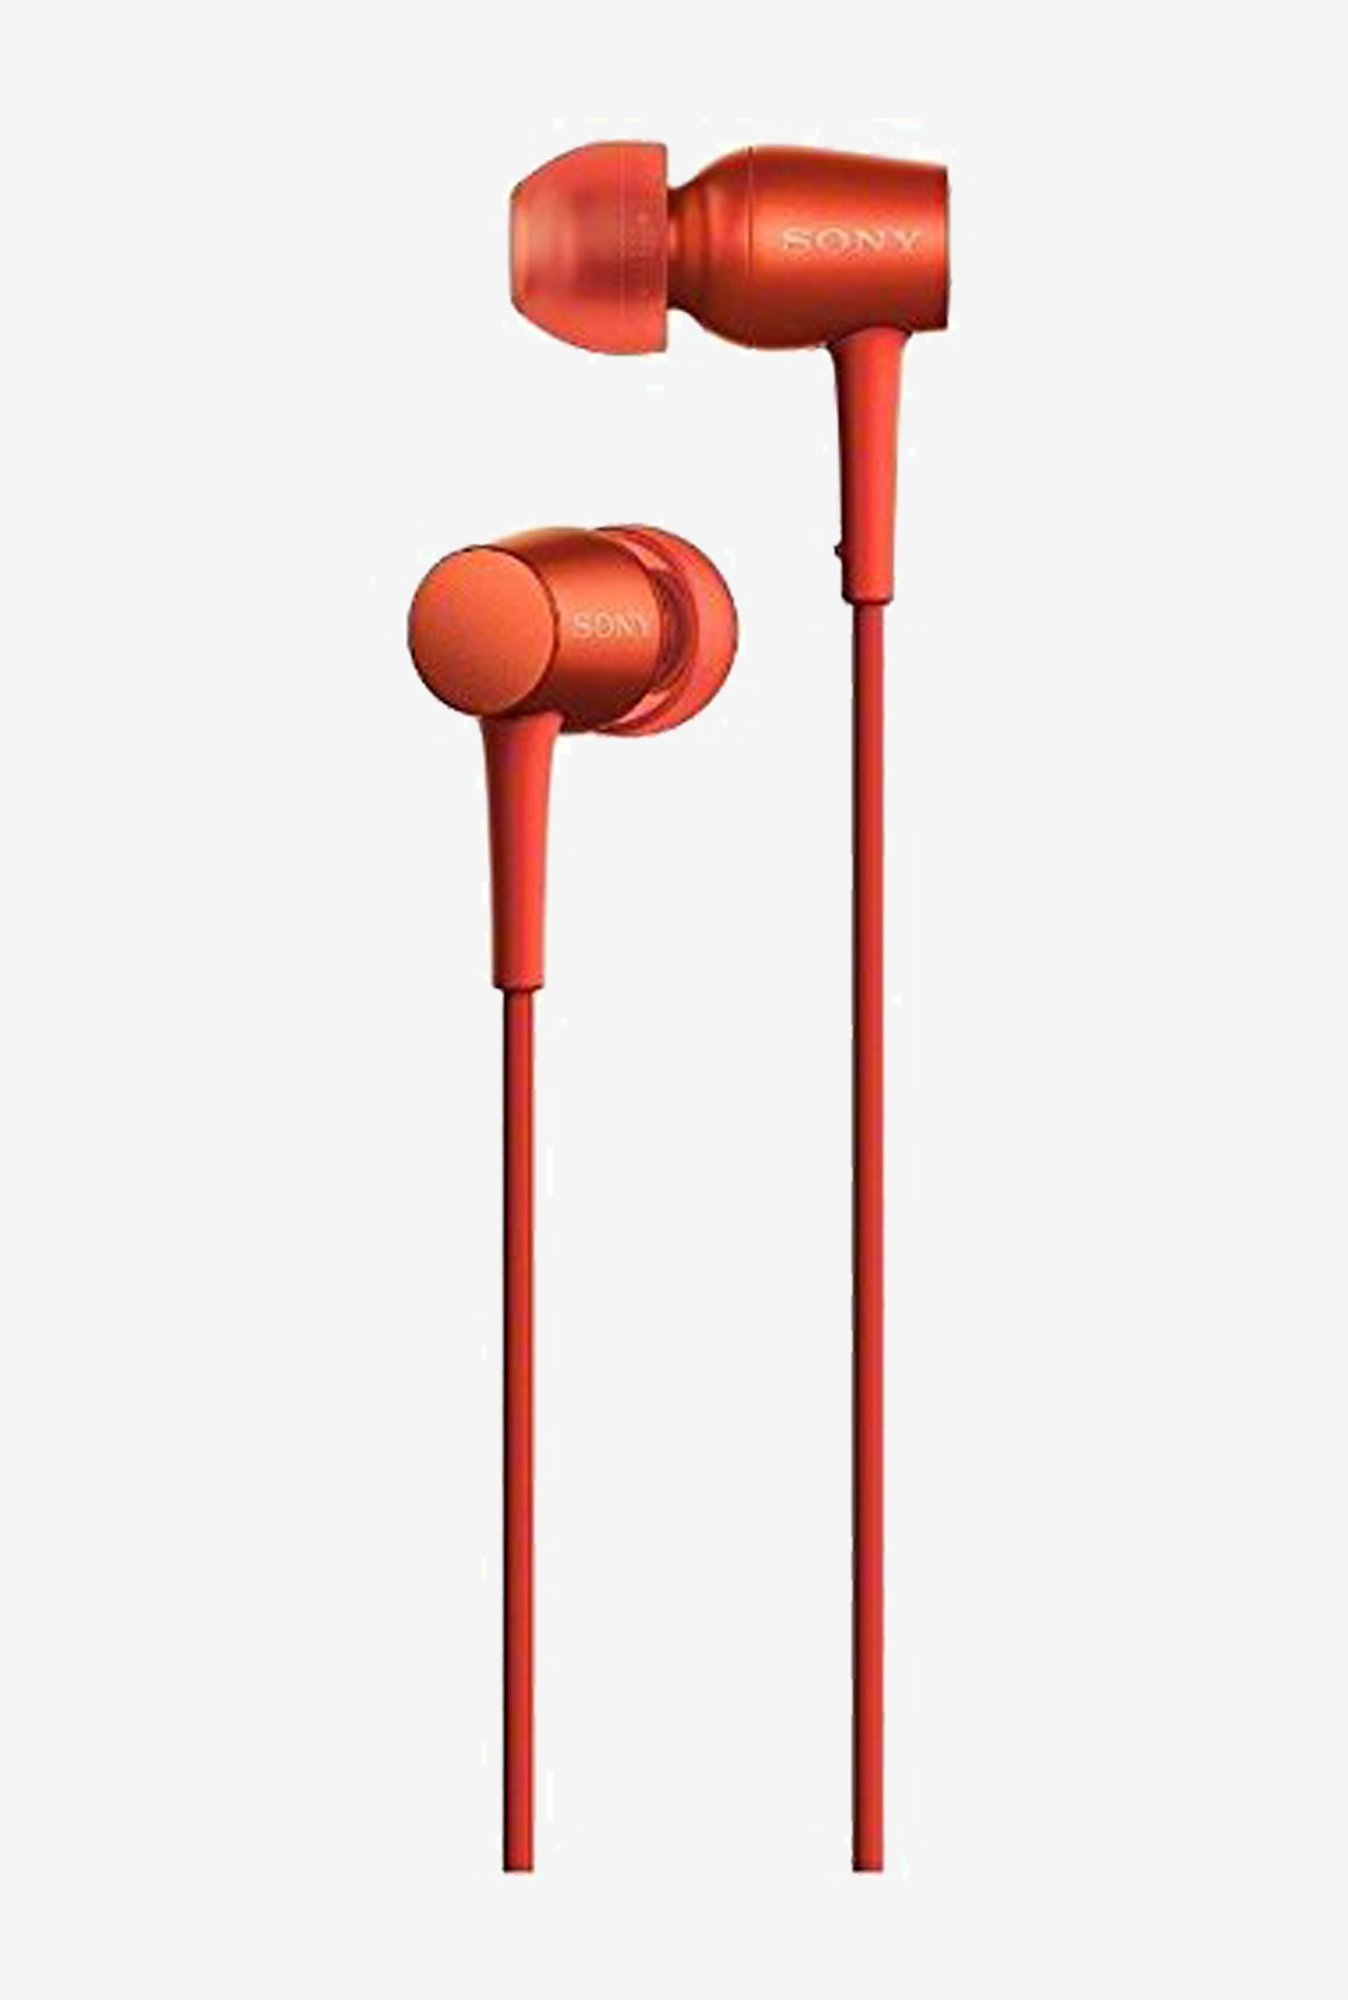 Sony Canal Type Earphone High-Resolution (Red)